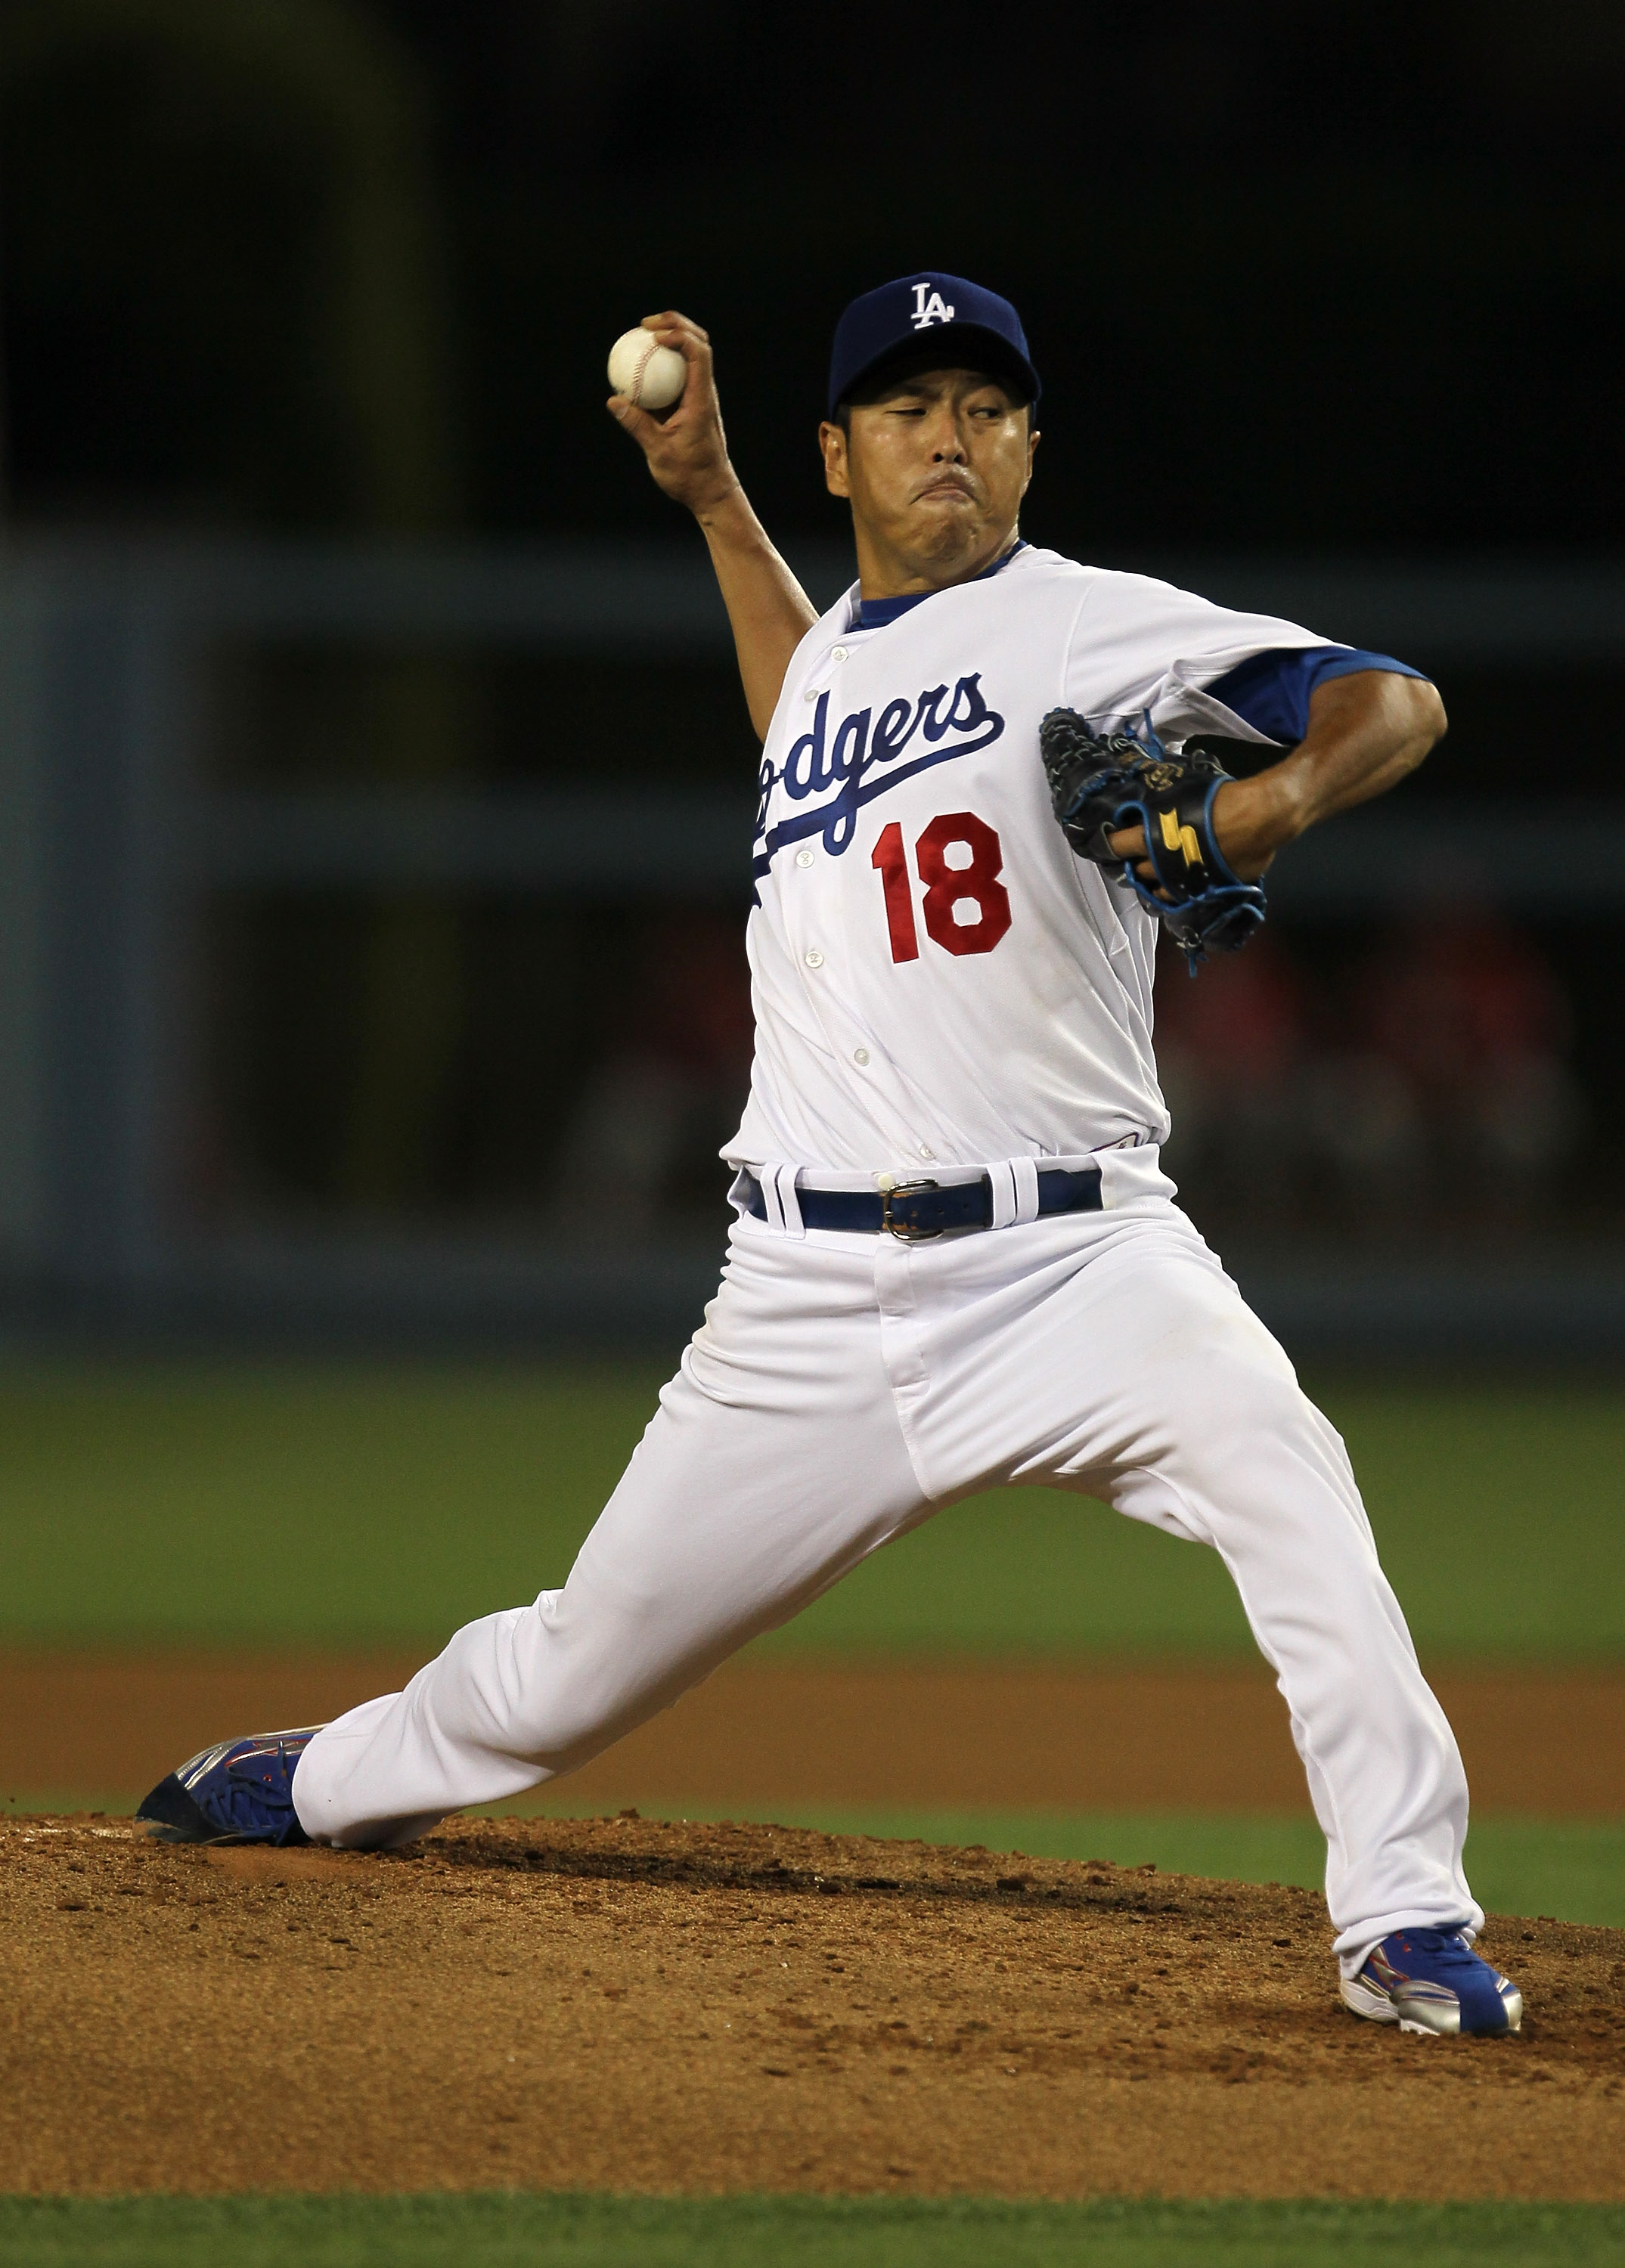 LOS ANGELES, CA - AUGUST 30:  Hiroki Kuroda #18 of the Los Angeles Dodgers throws a pitch against the Philadelphia Phillies on August 30, 2010 at Dodger Stadium  in Los Angeles, California.  (Photo by Stephen Dunn/Getty Images)